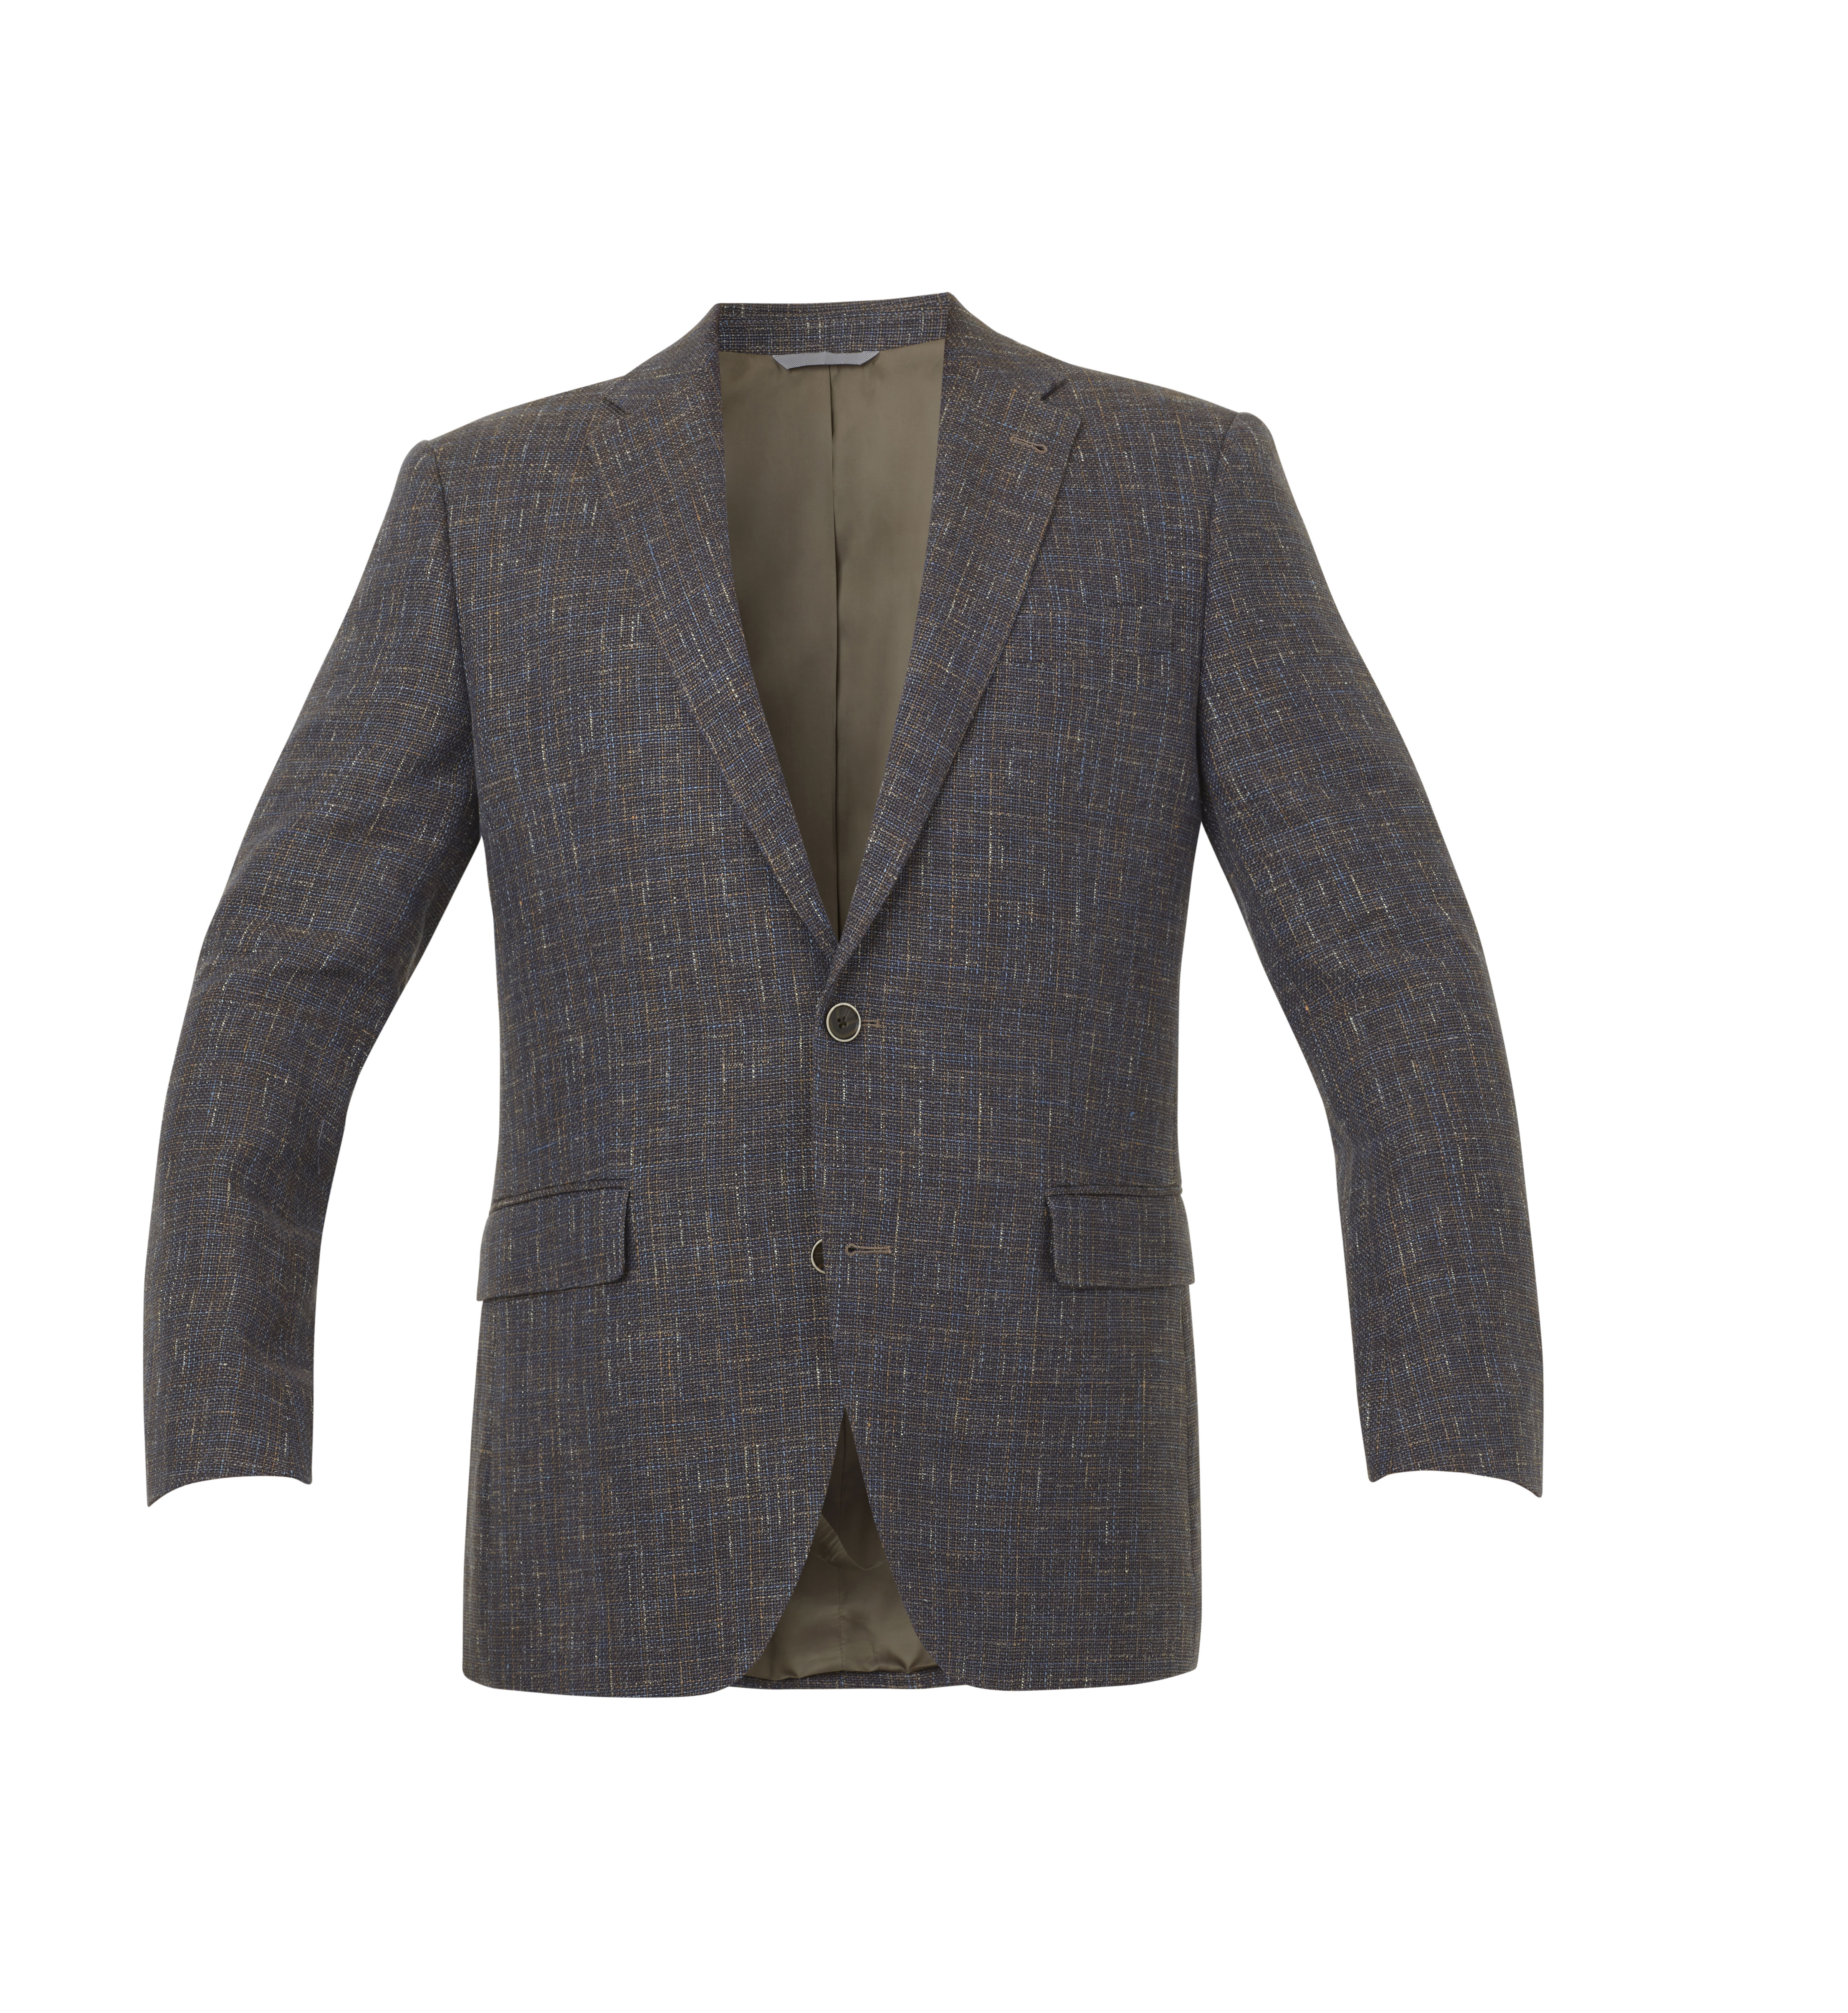 SPORT COAT BY TOM JAMES